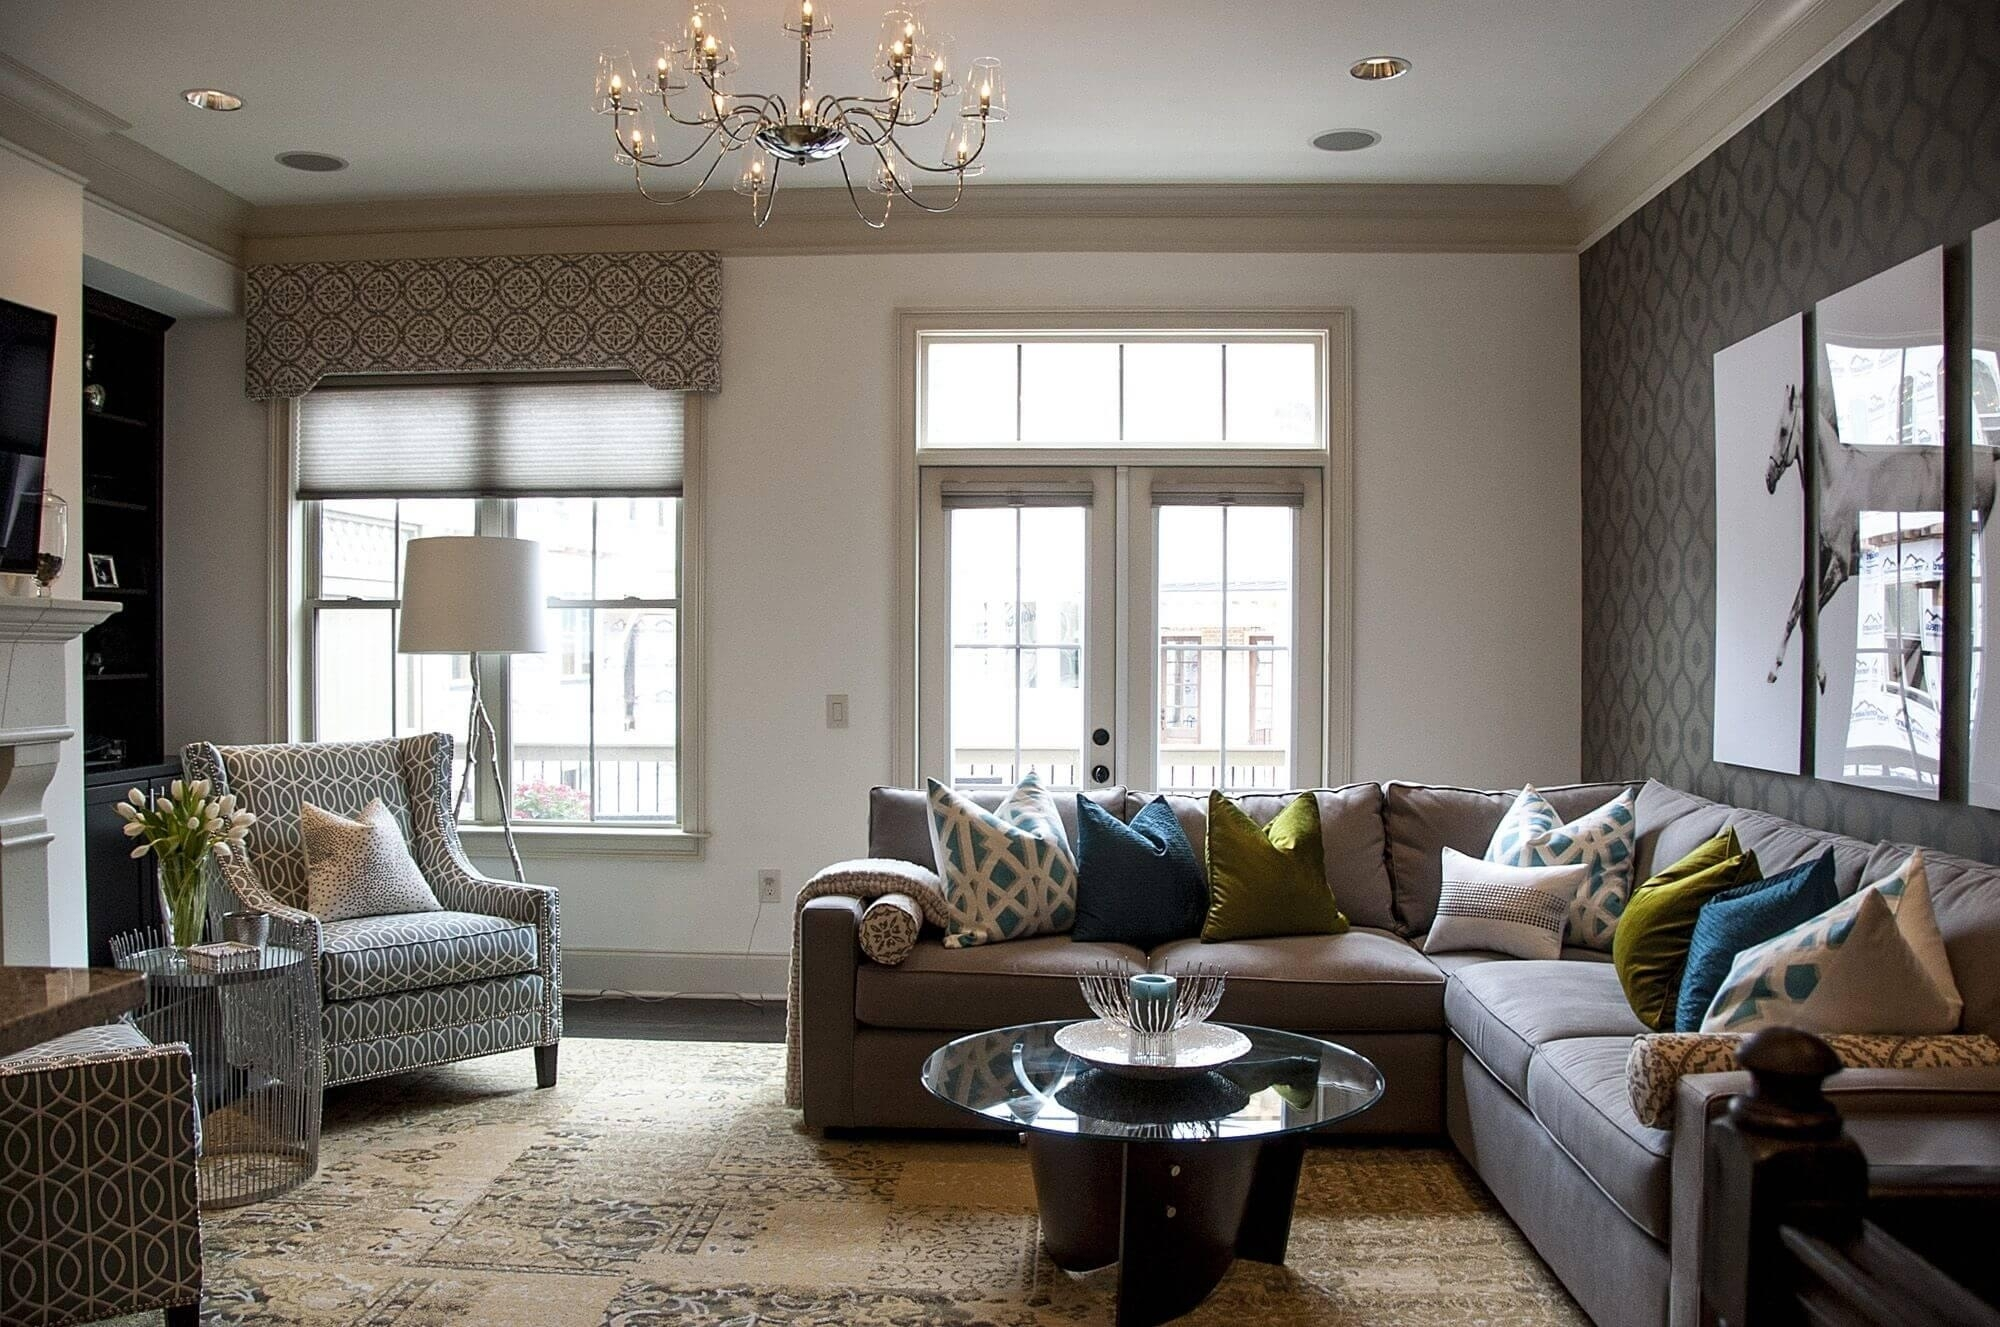 15+ Choices Of Decorating With A Sectional Sofa | Sofa Ideas Within Sectional Sofas Decorating (View 1 of 10)